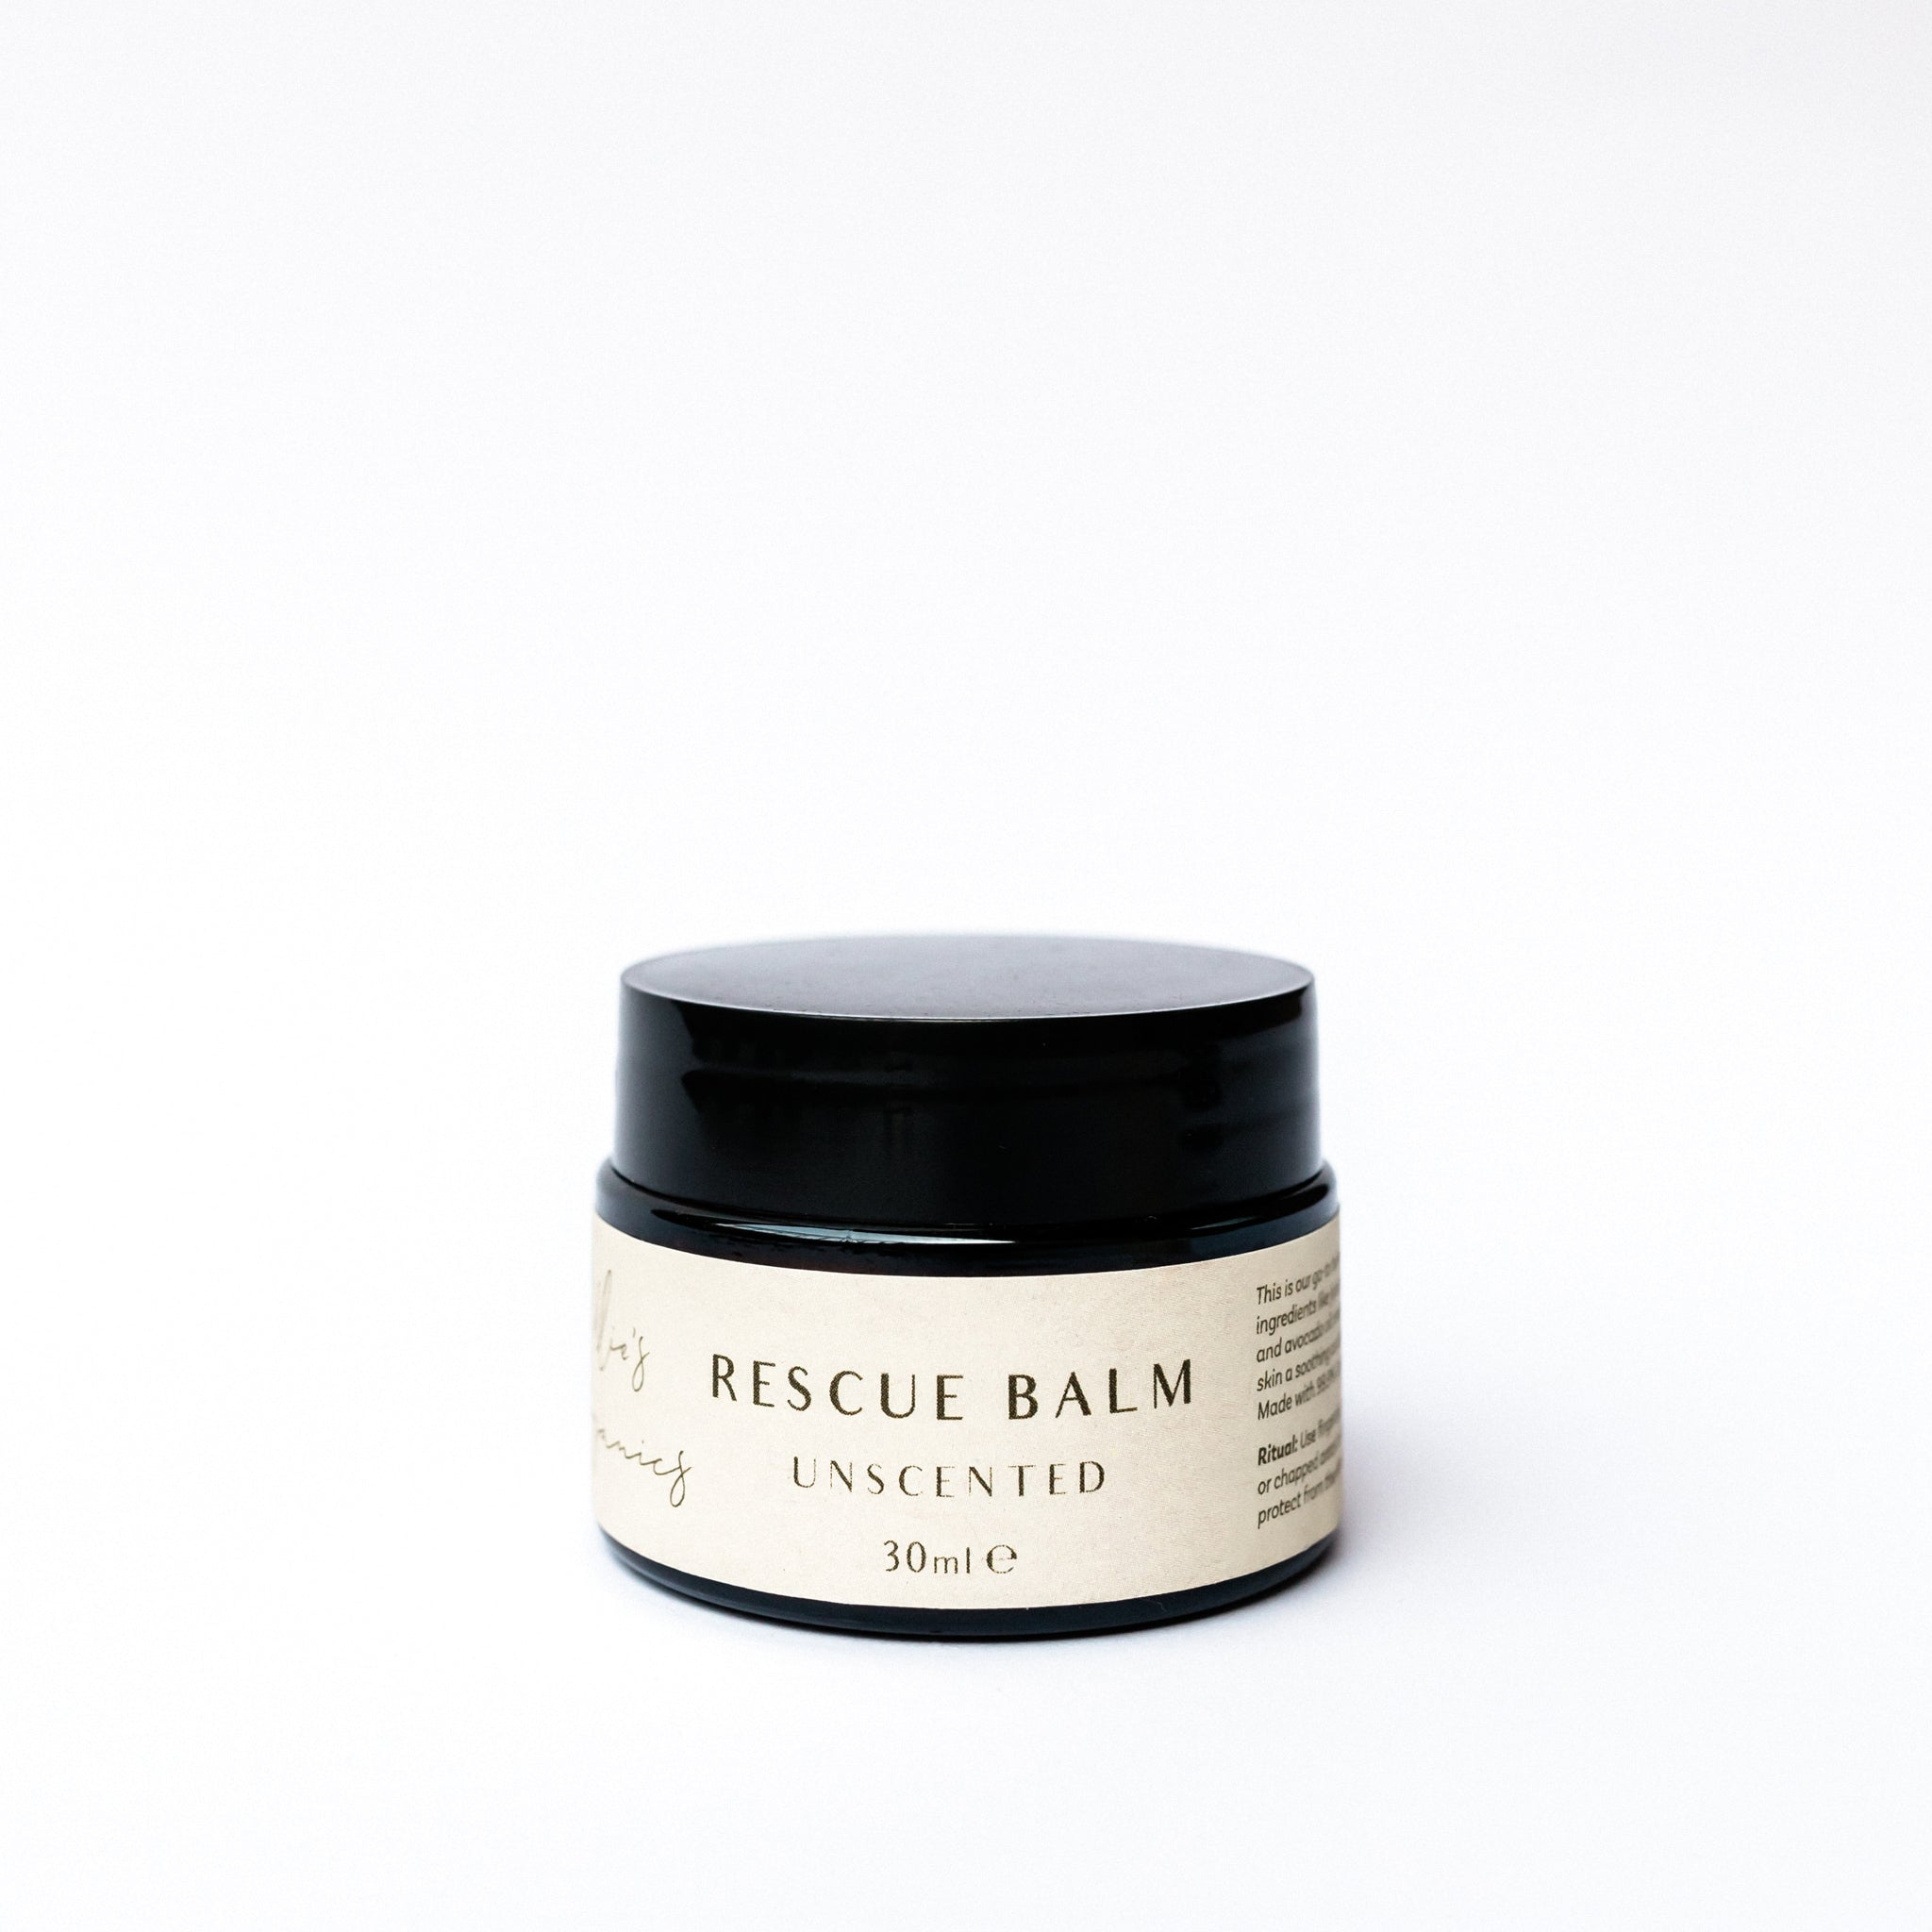 Unscented Rescue Balm